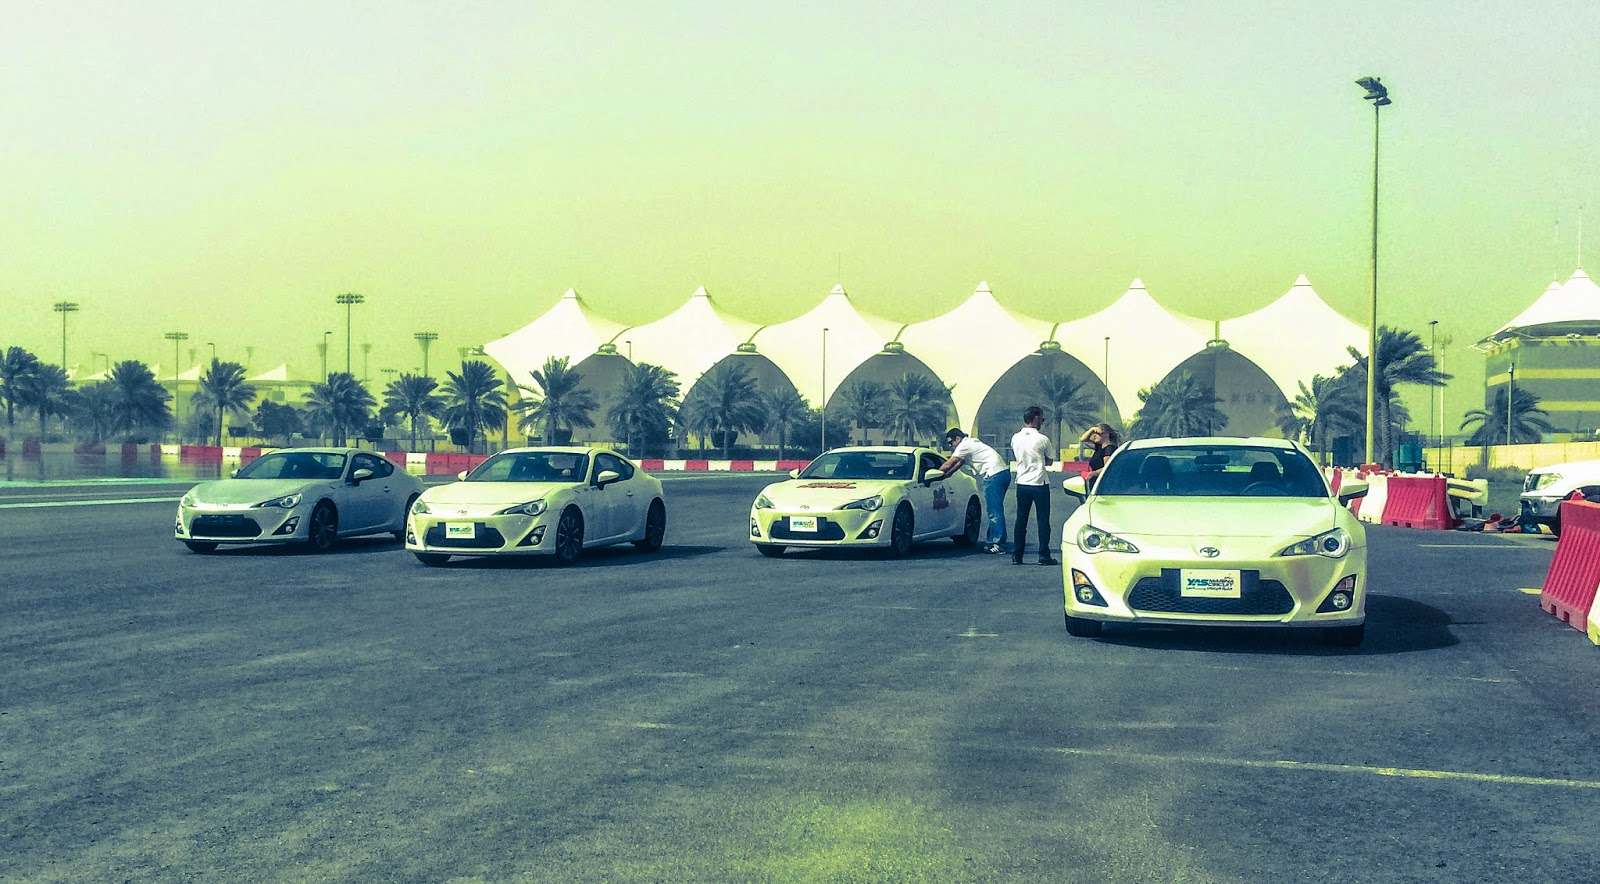 Toyota 86 drifting at Yas Marina Circuit